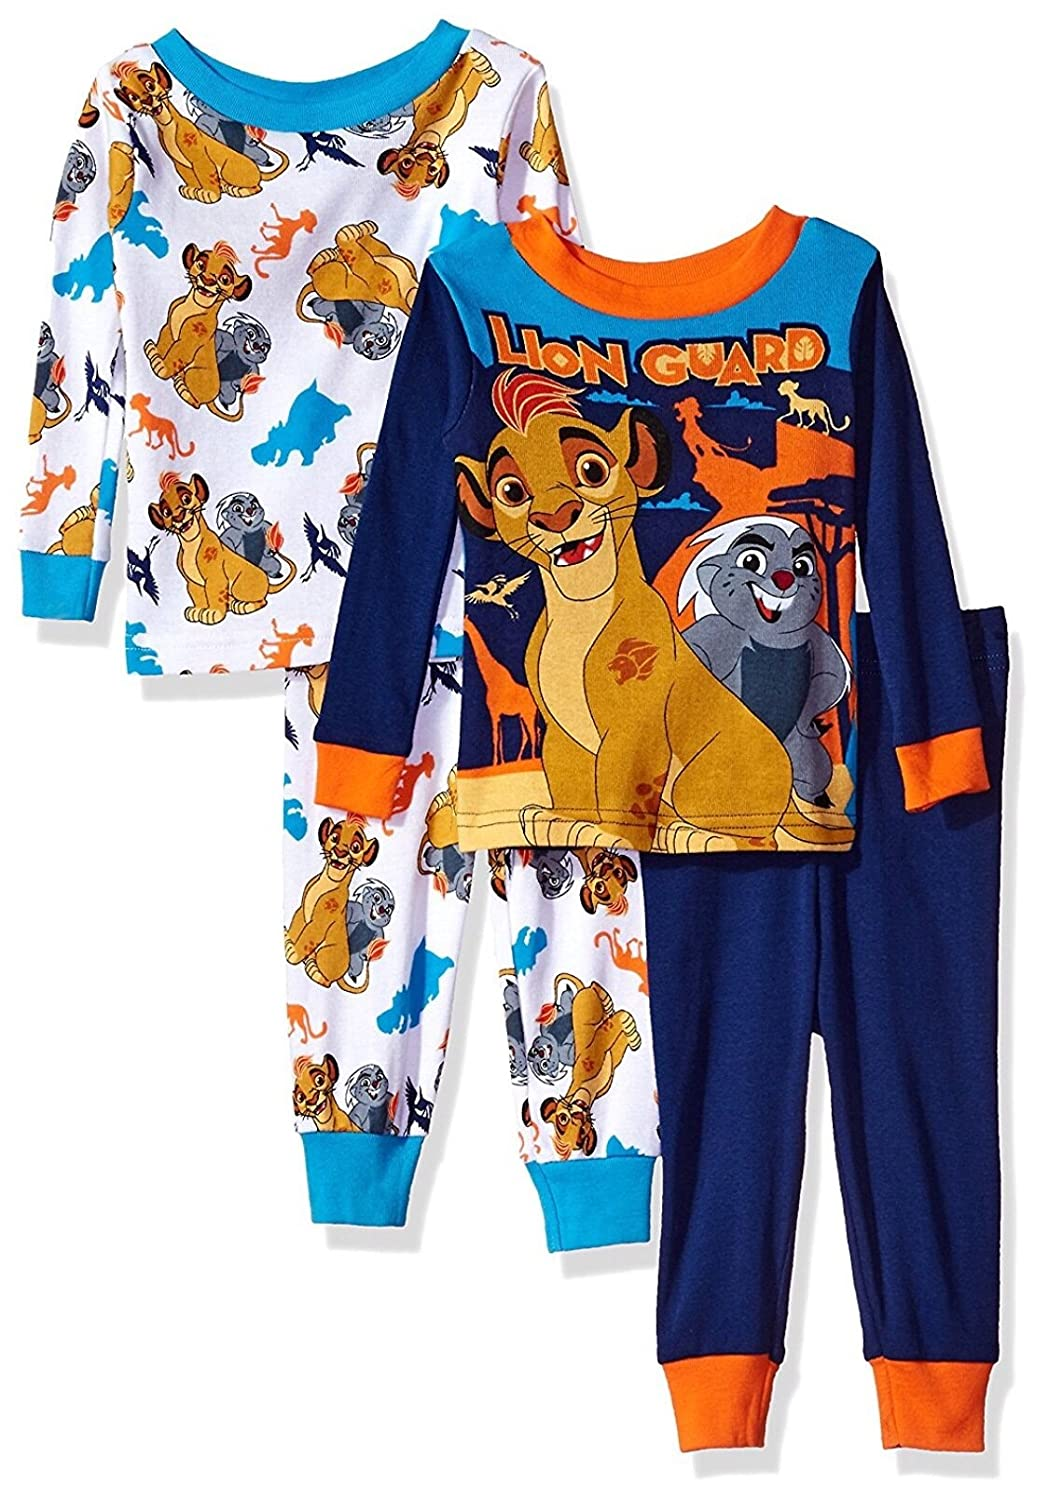 Disney Junior The Lion Guard 4 piece Cotton Toddler Pajamas for boys (4T) LG018ELL4T